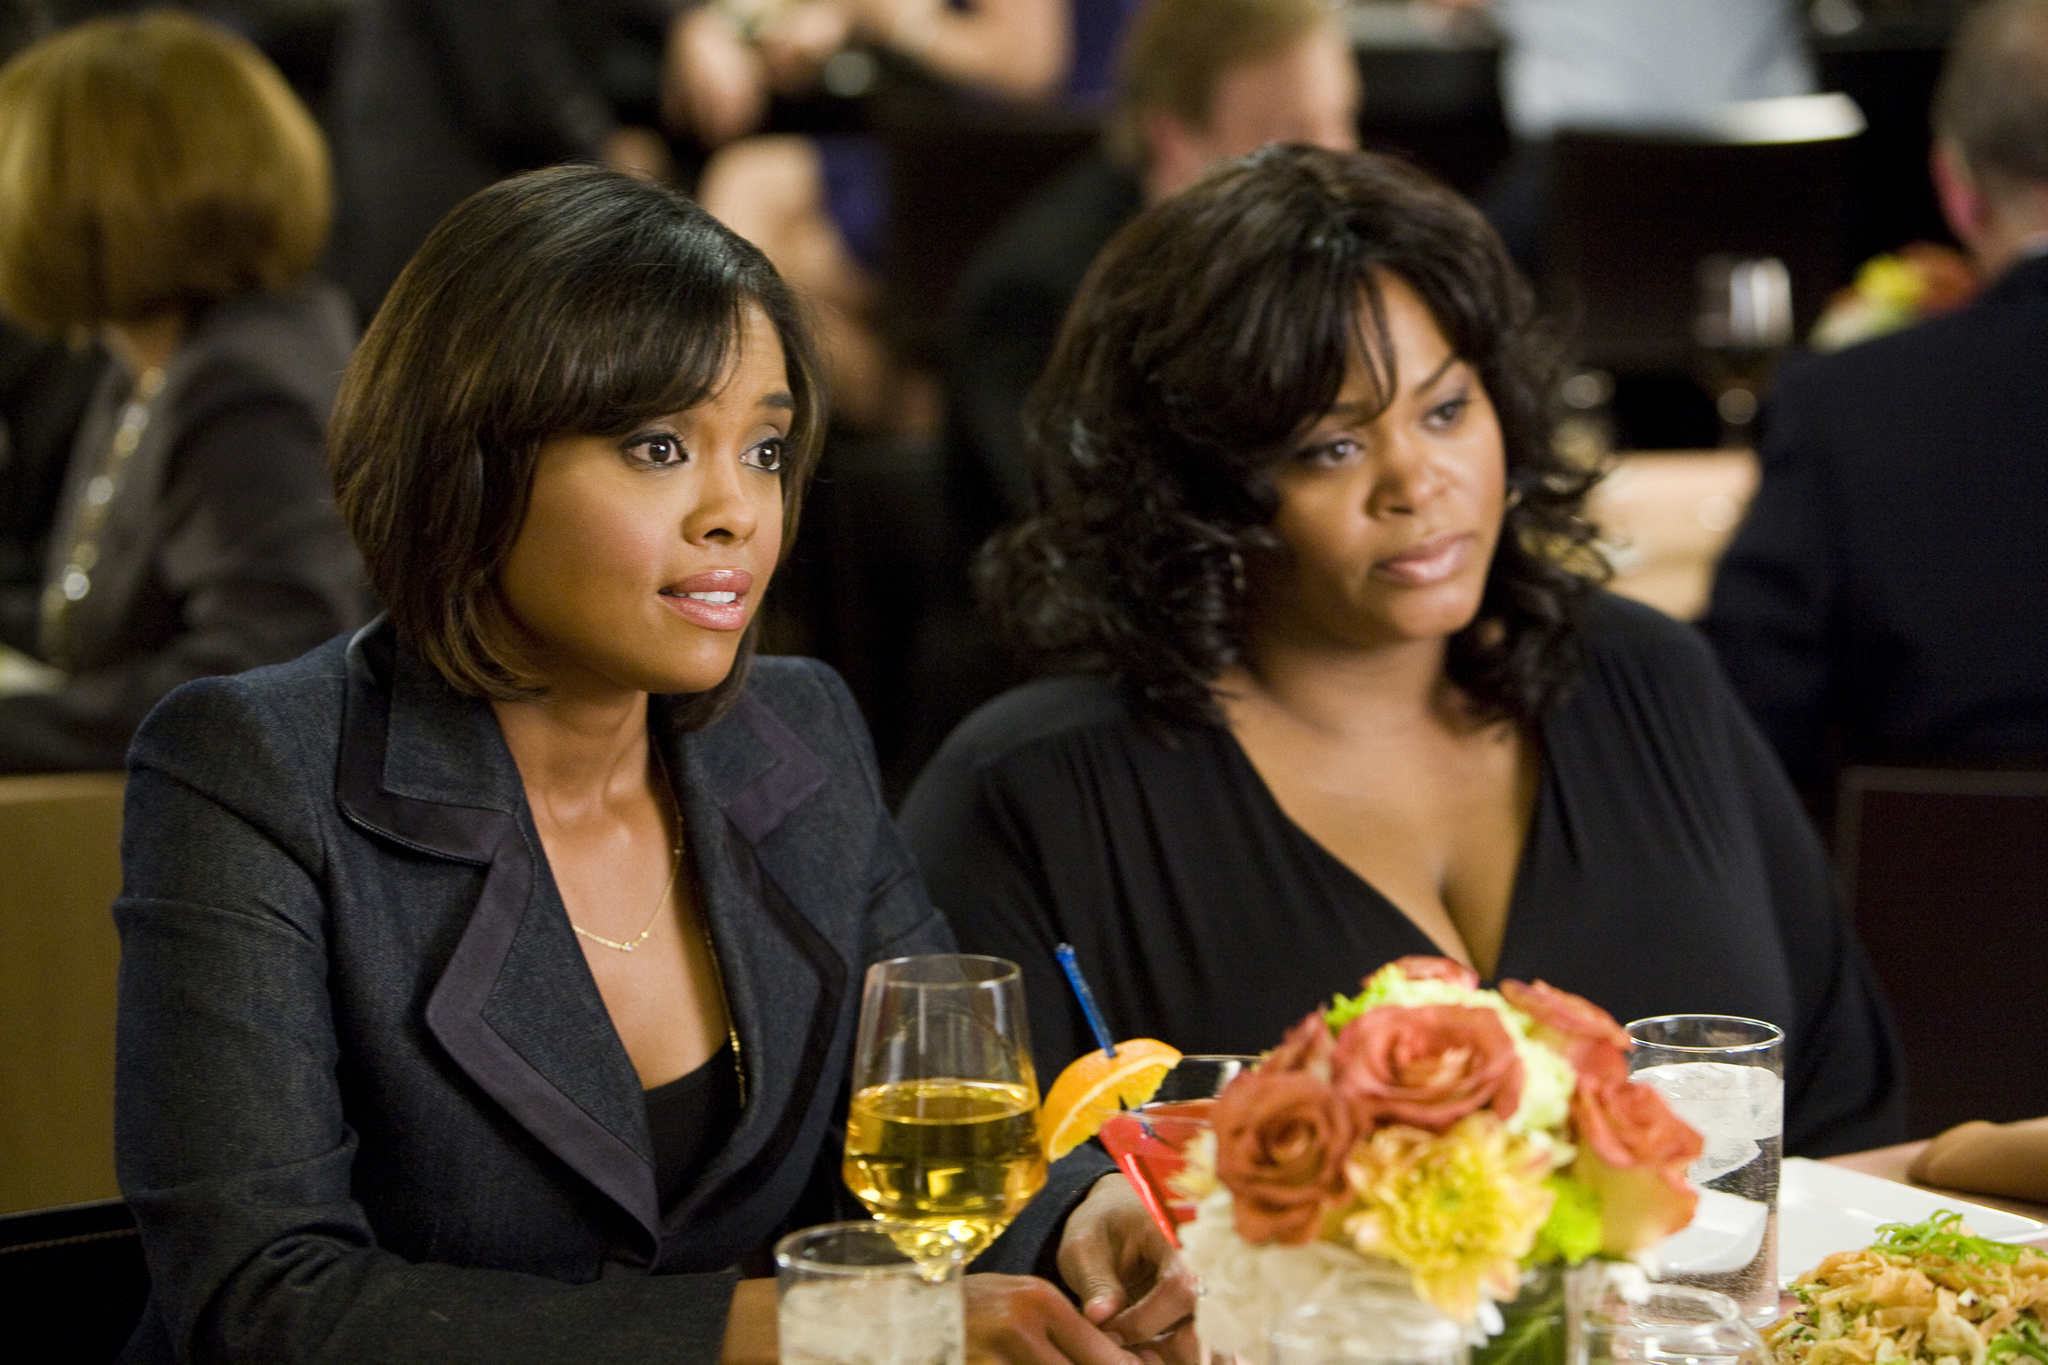 Sharon Leal and Jill Scott in Why Did I Get Married Too? (2010)